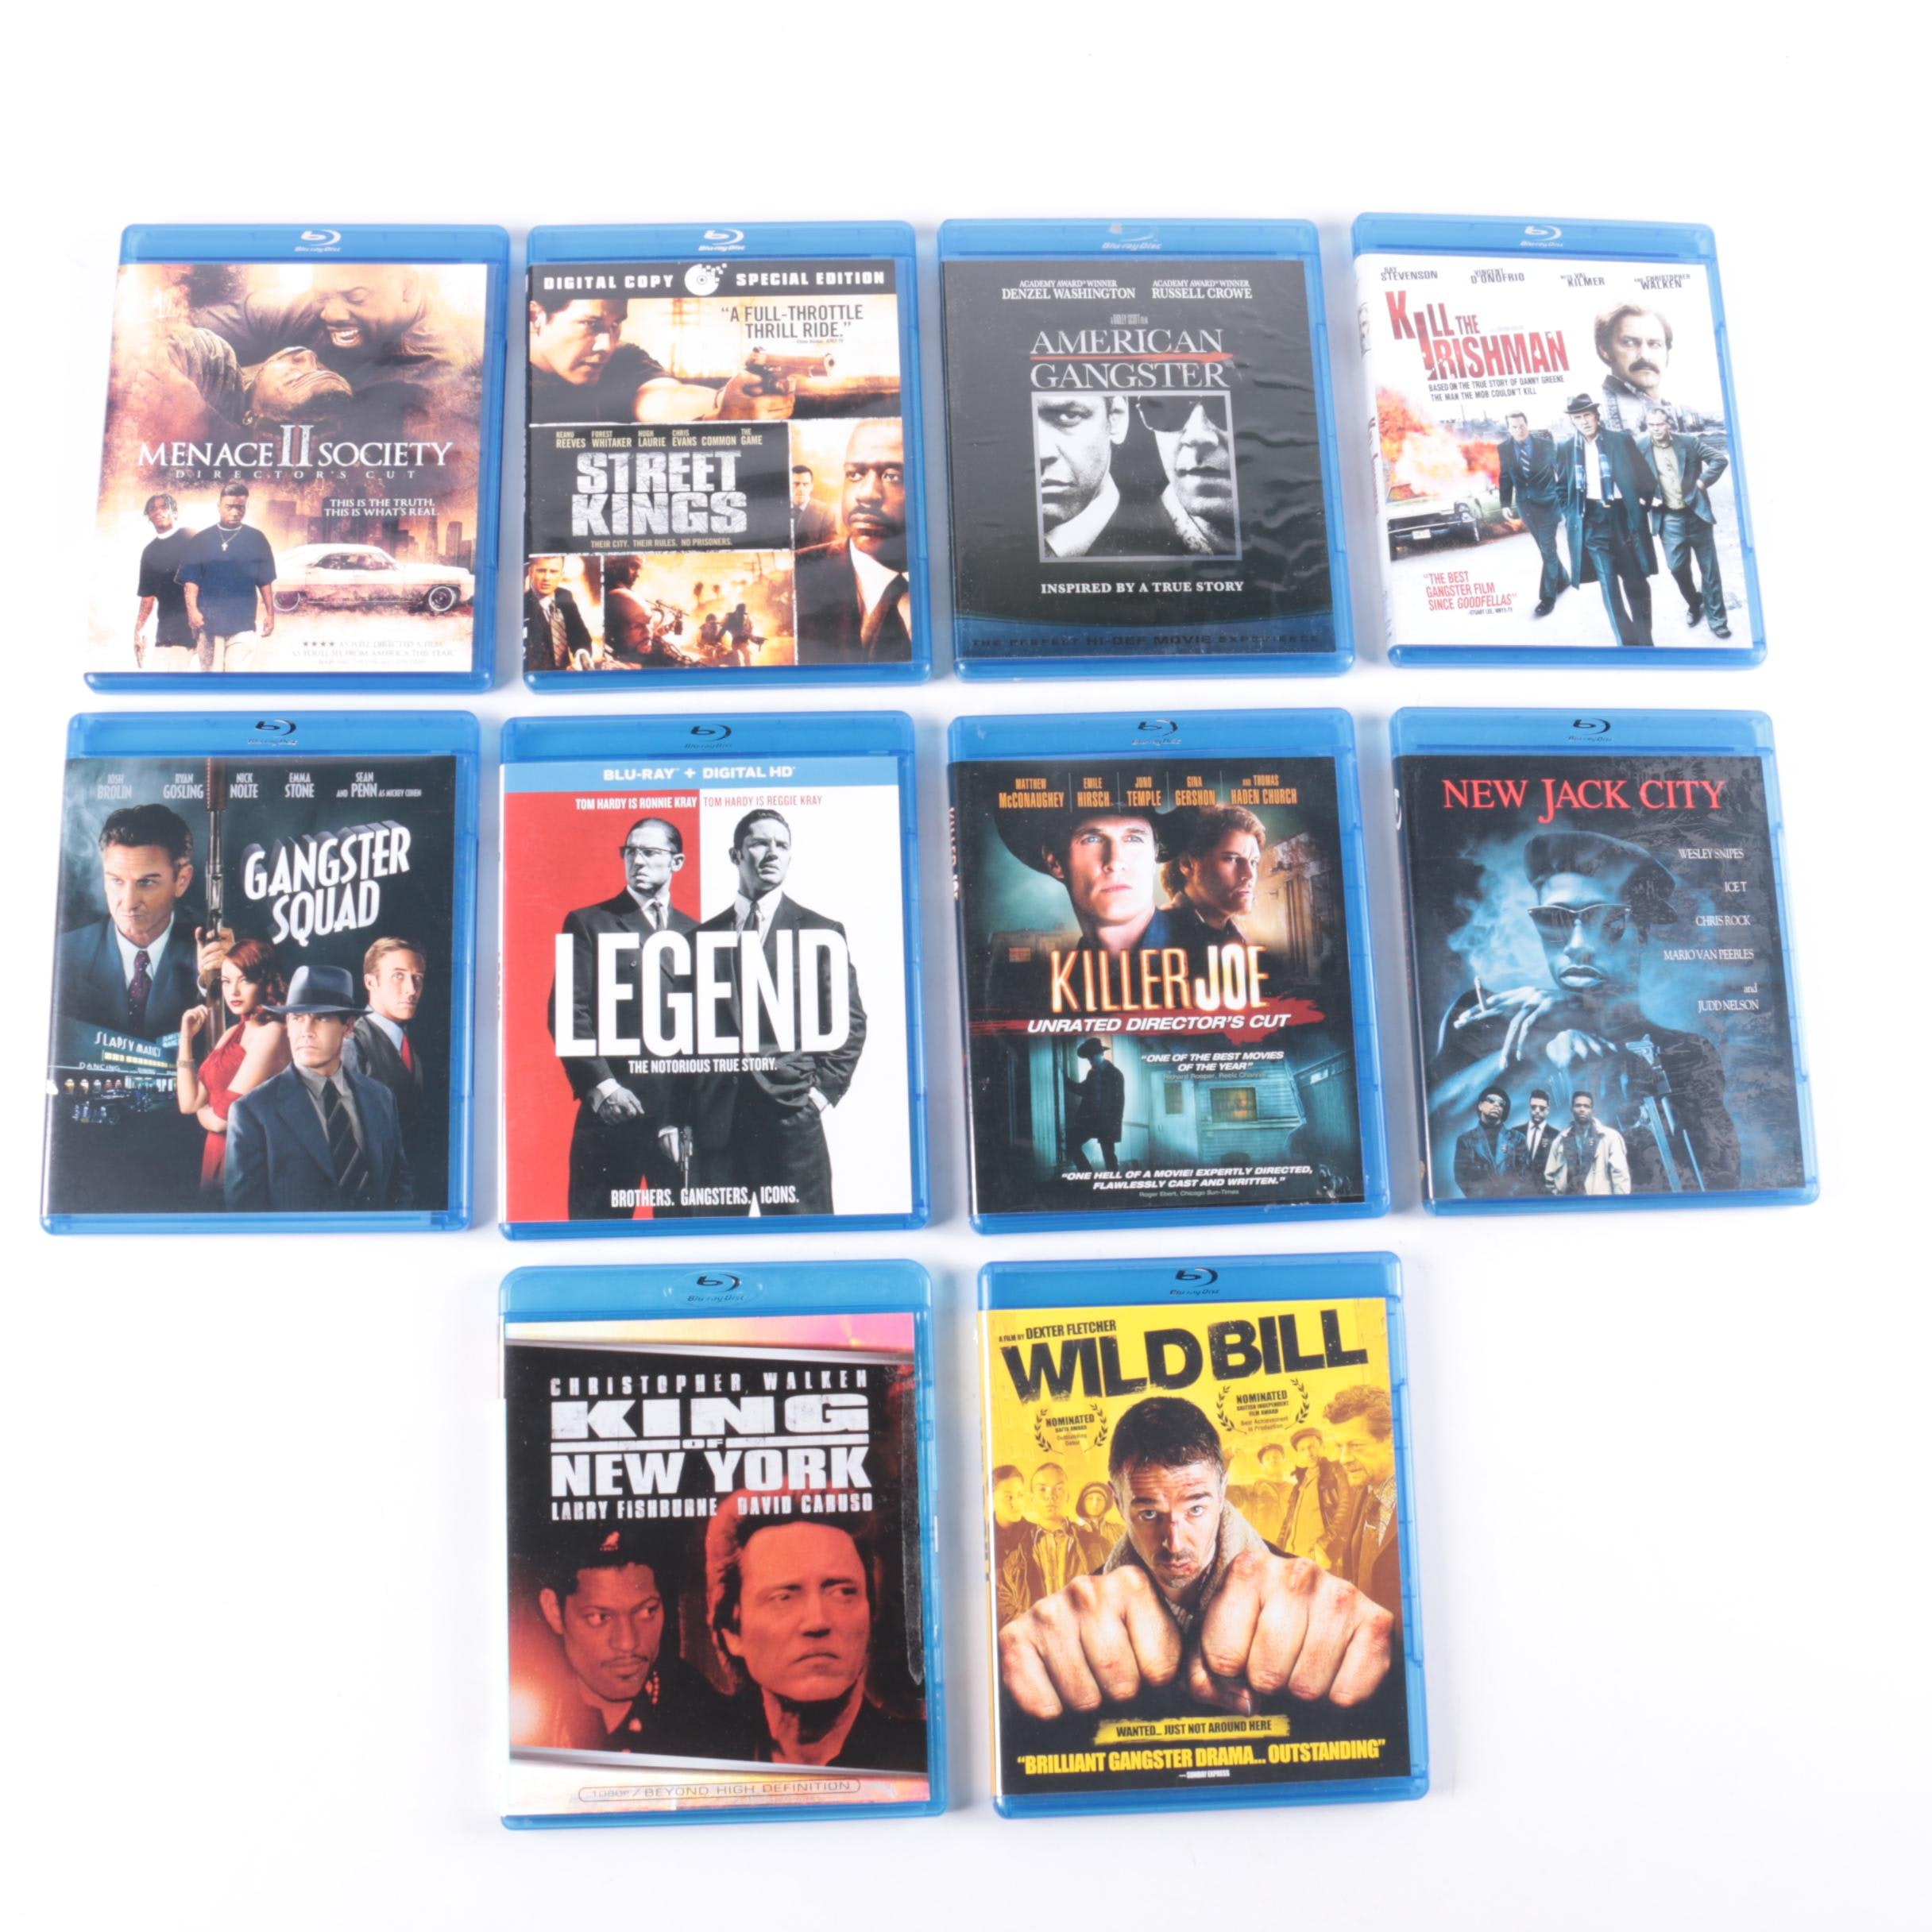 """Gangster Warfare Films Blu-rays Including """"King of New York"""" and """"New Jack City"""""""